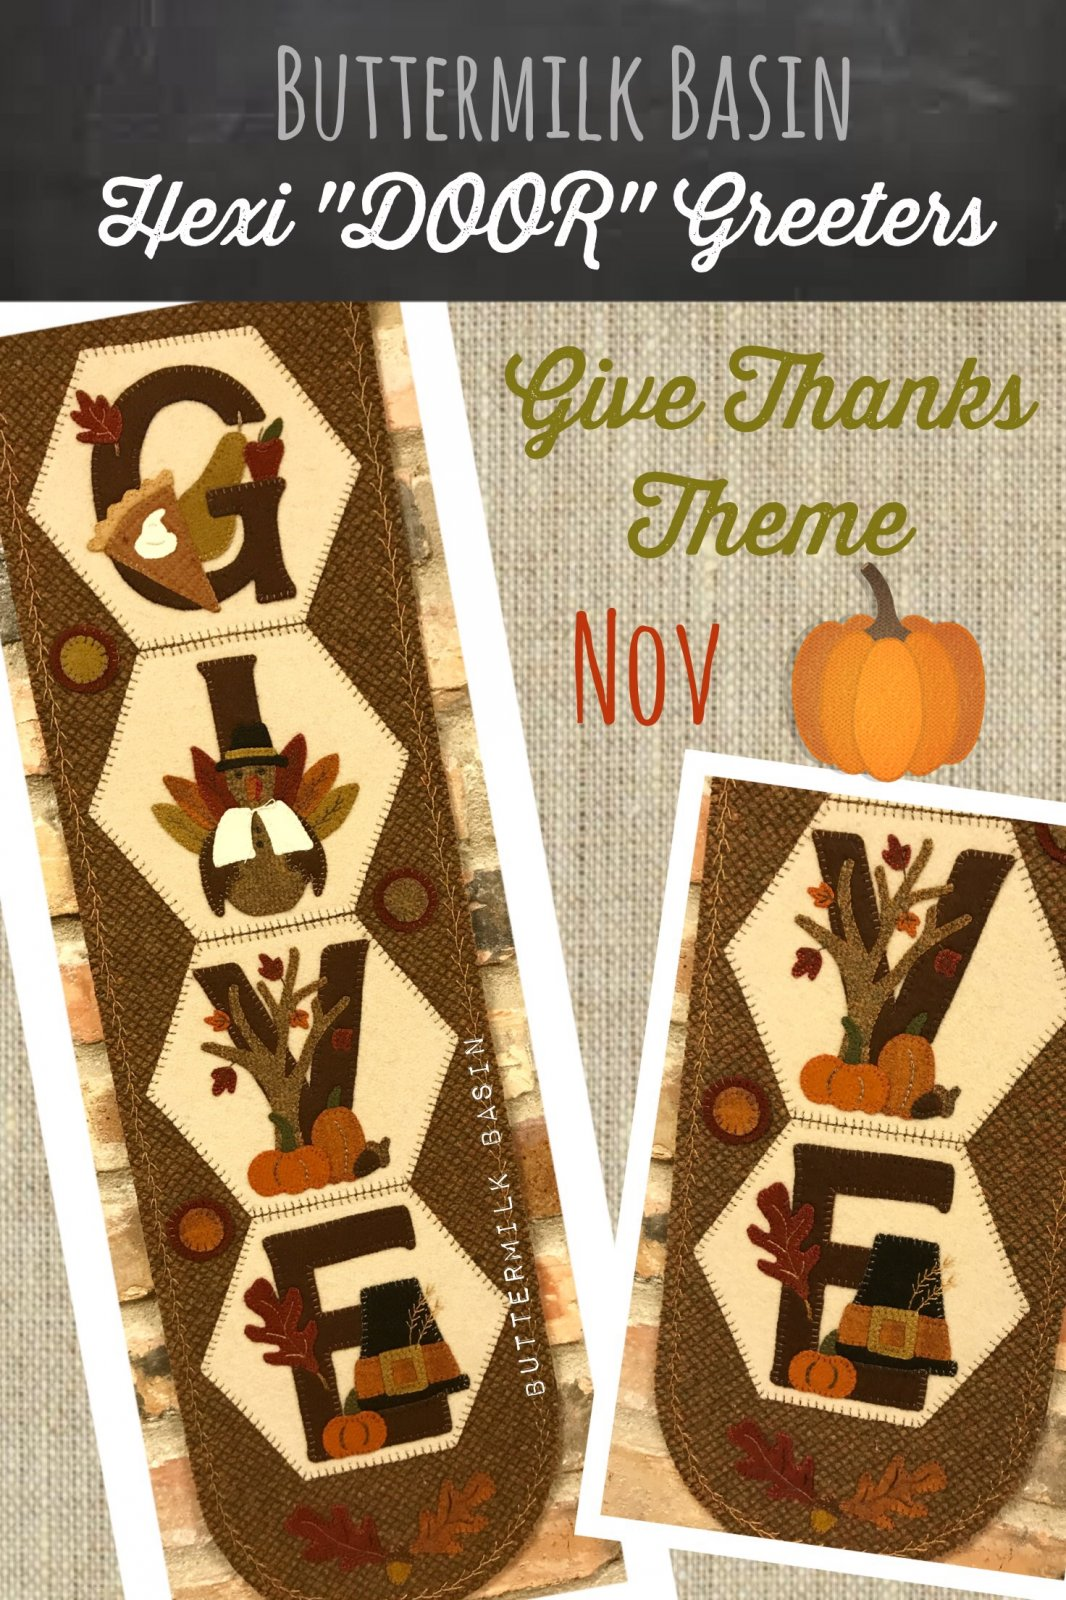 A Year of Hexi WORD Door Greeters * November Pattern